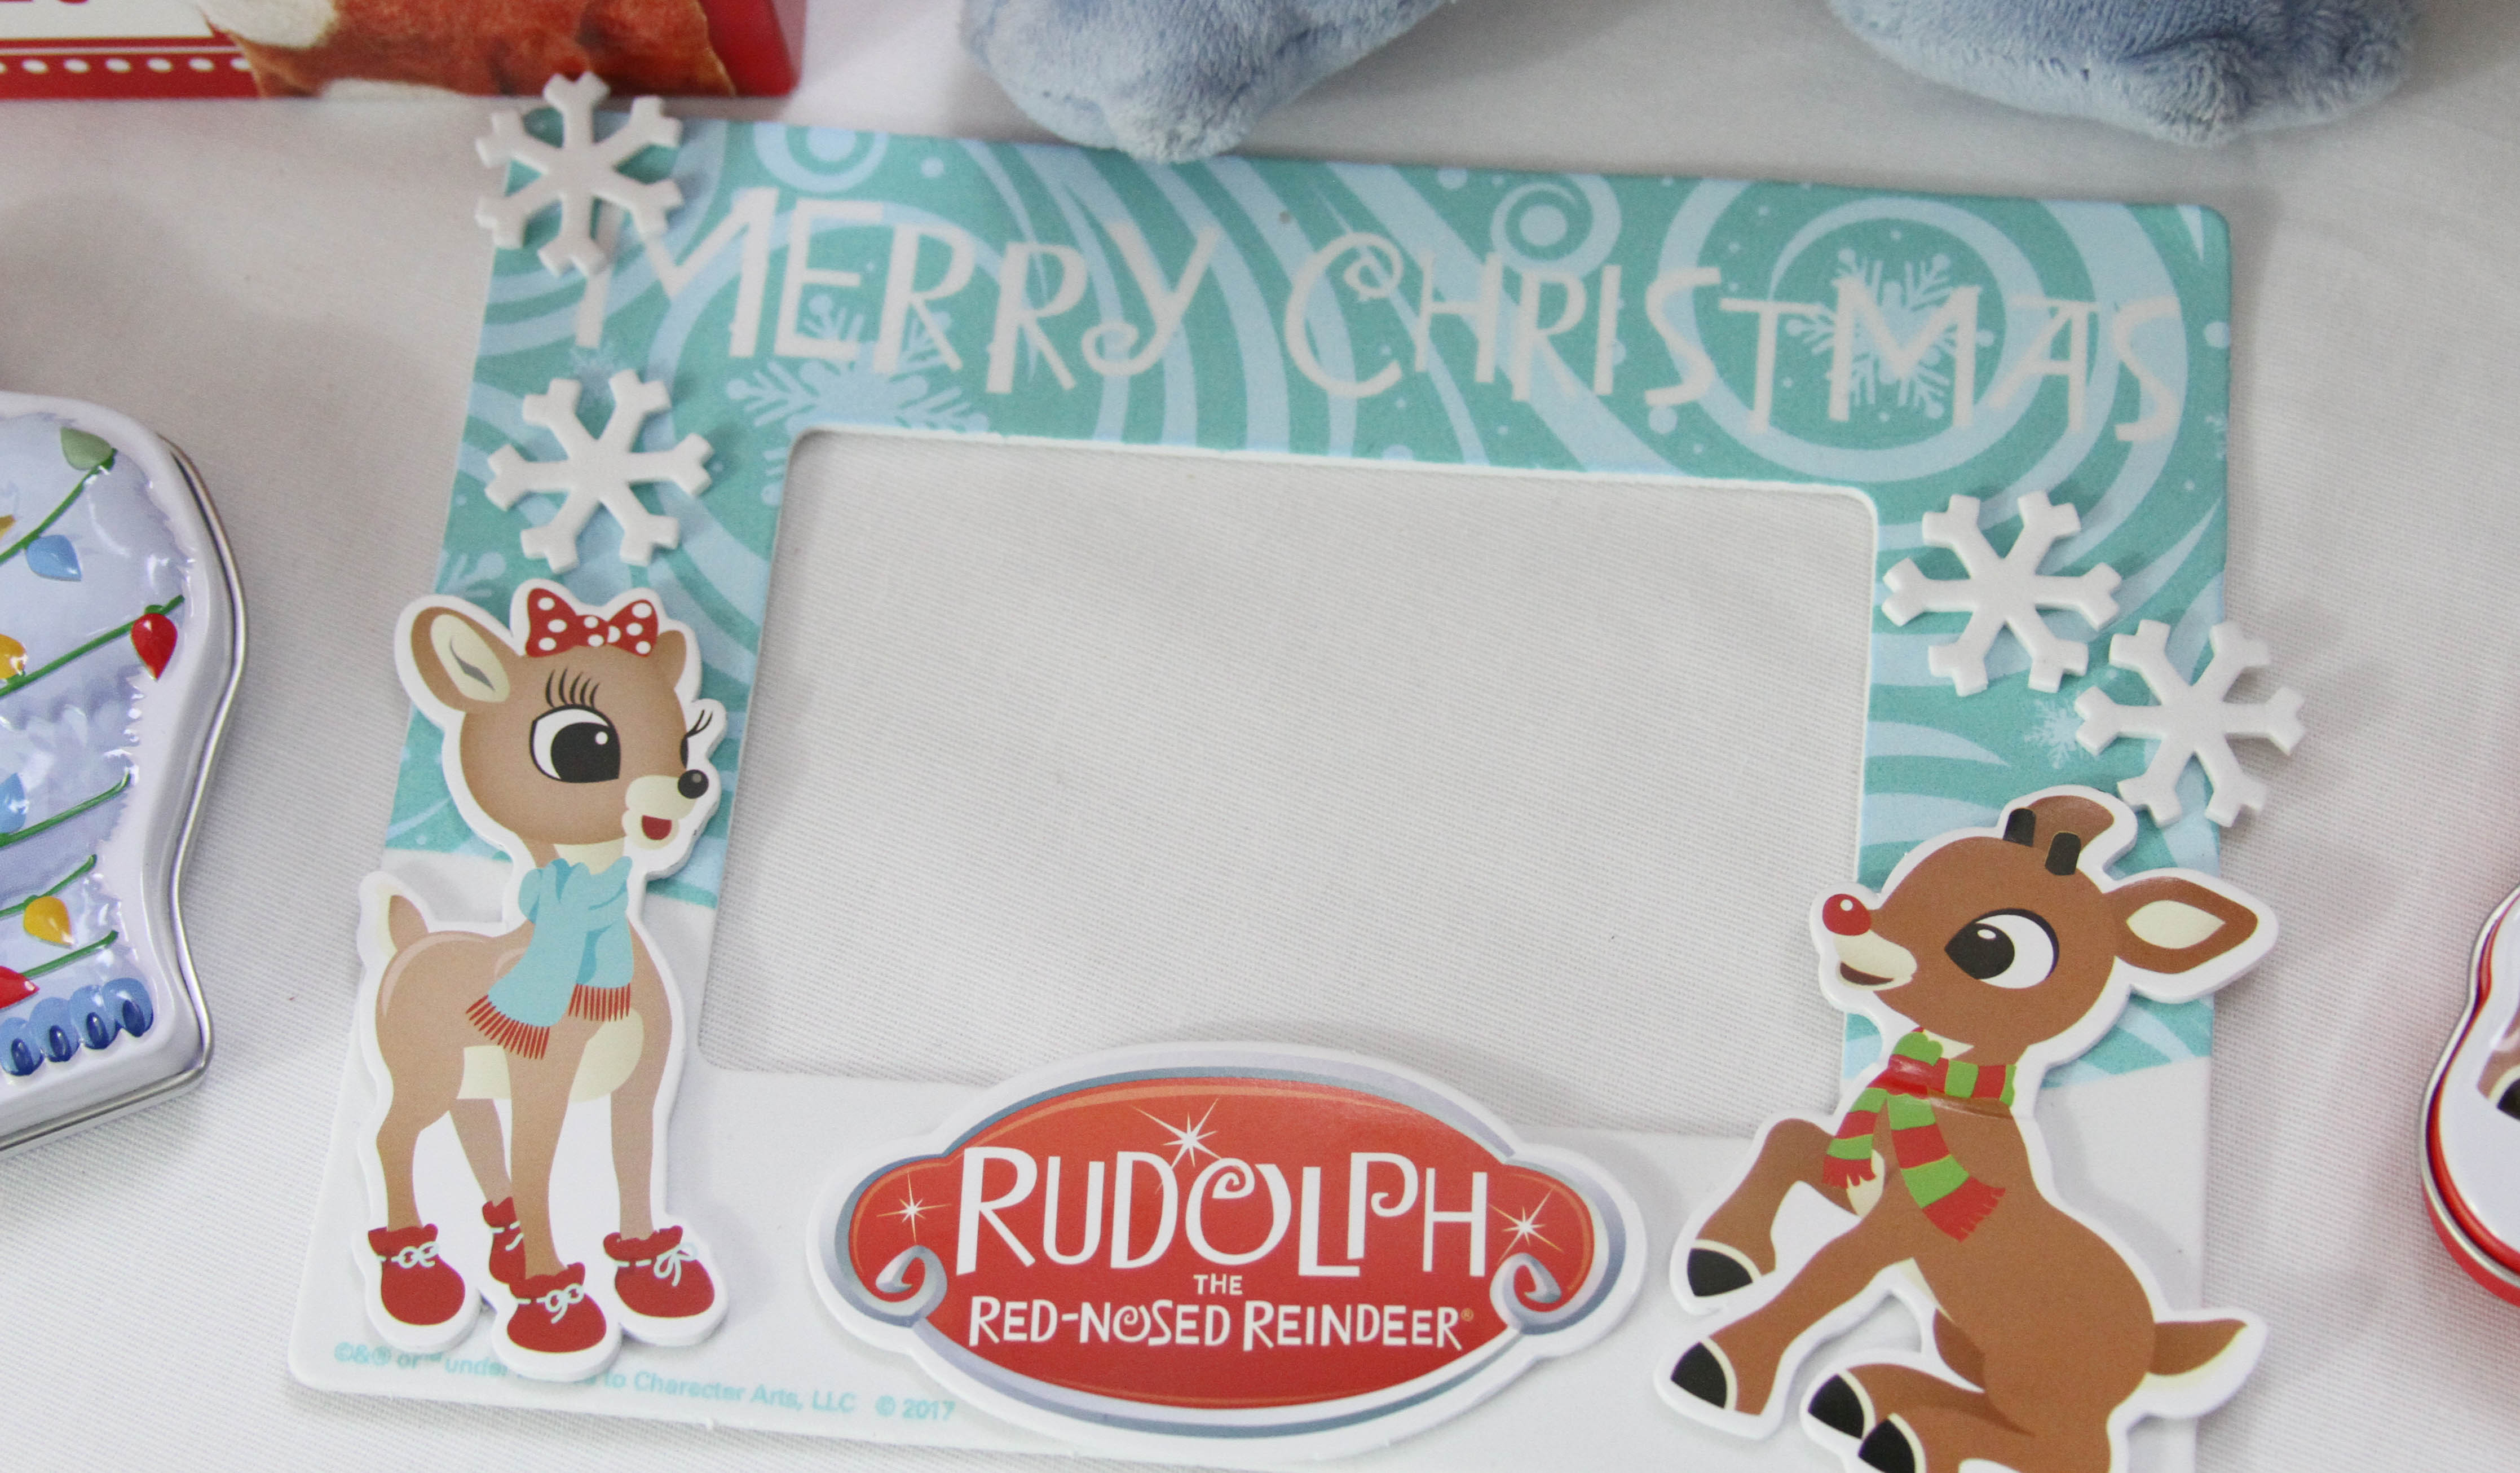 Everyday Party Magazine Rudolph the Red Nosed Reindeer Party